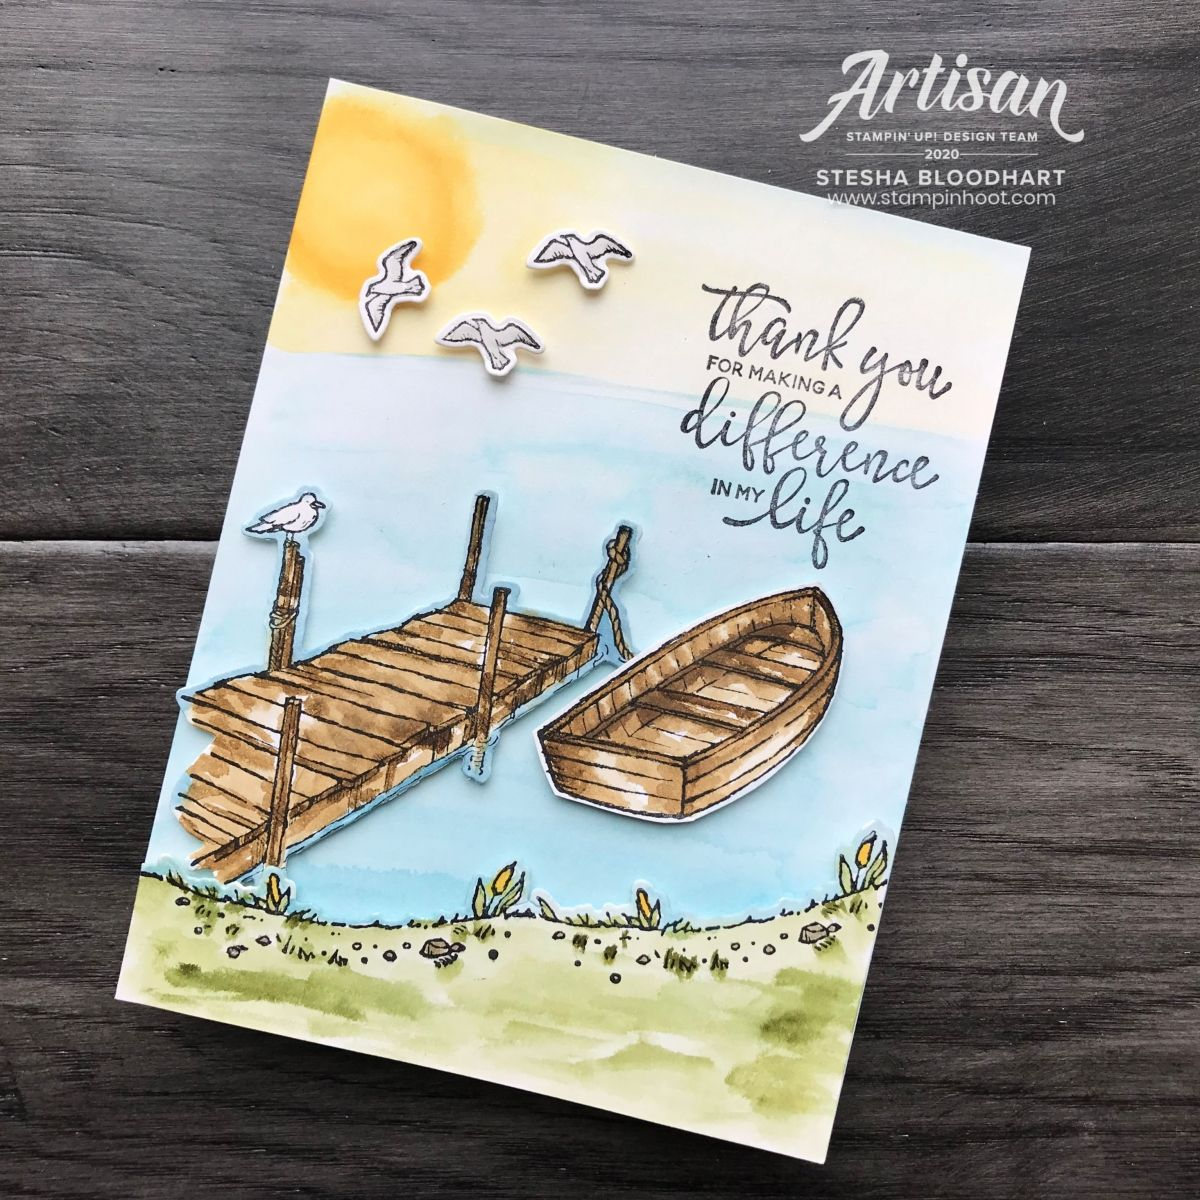 Pals Blog Hop: Art From the Heart - By the Dock | Stampin' Hoot